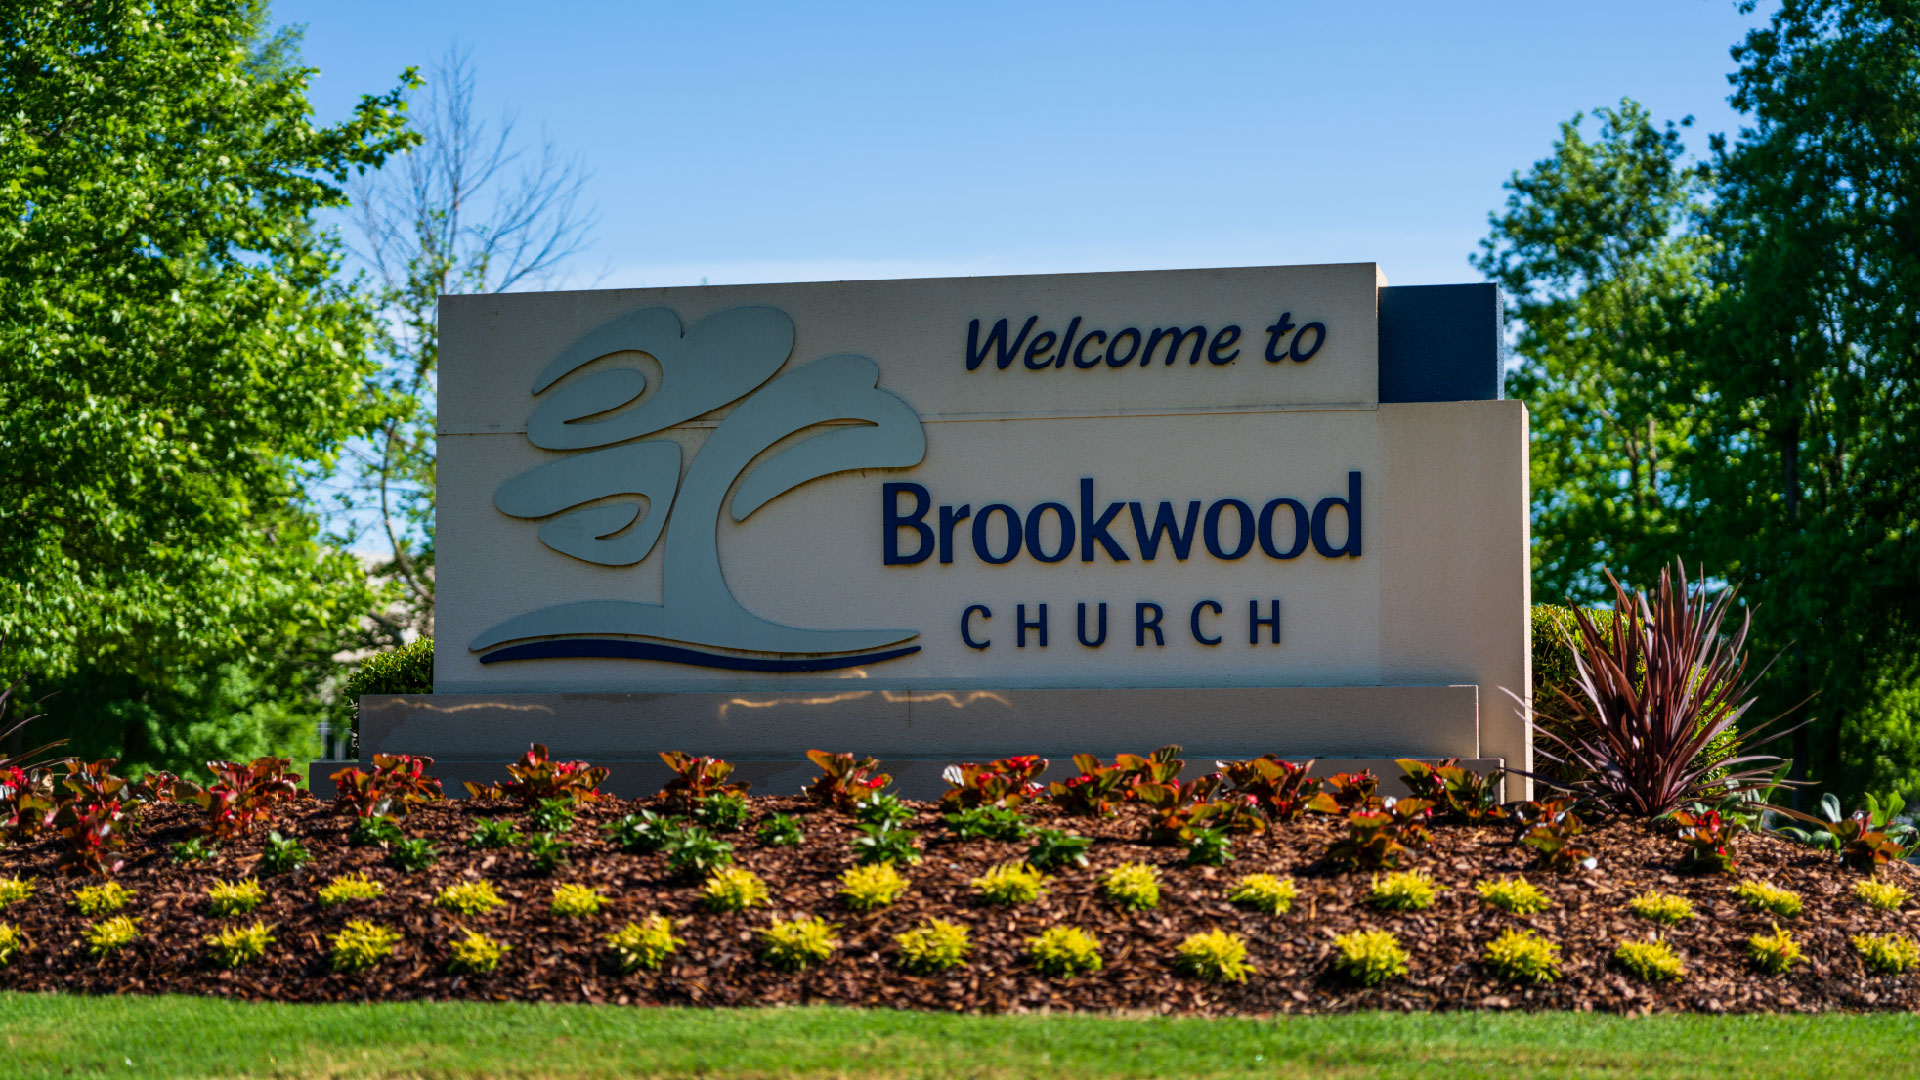 The sign at the front of the Brookwood Church property